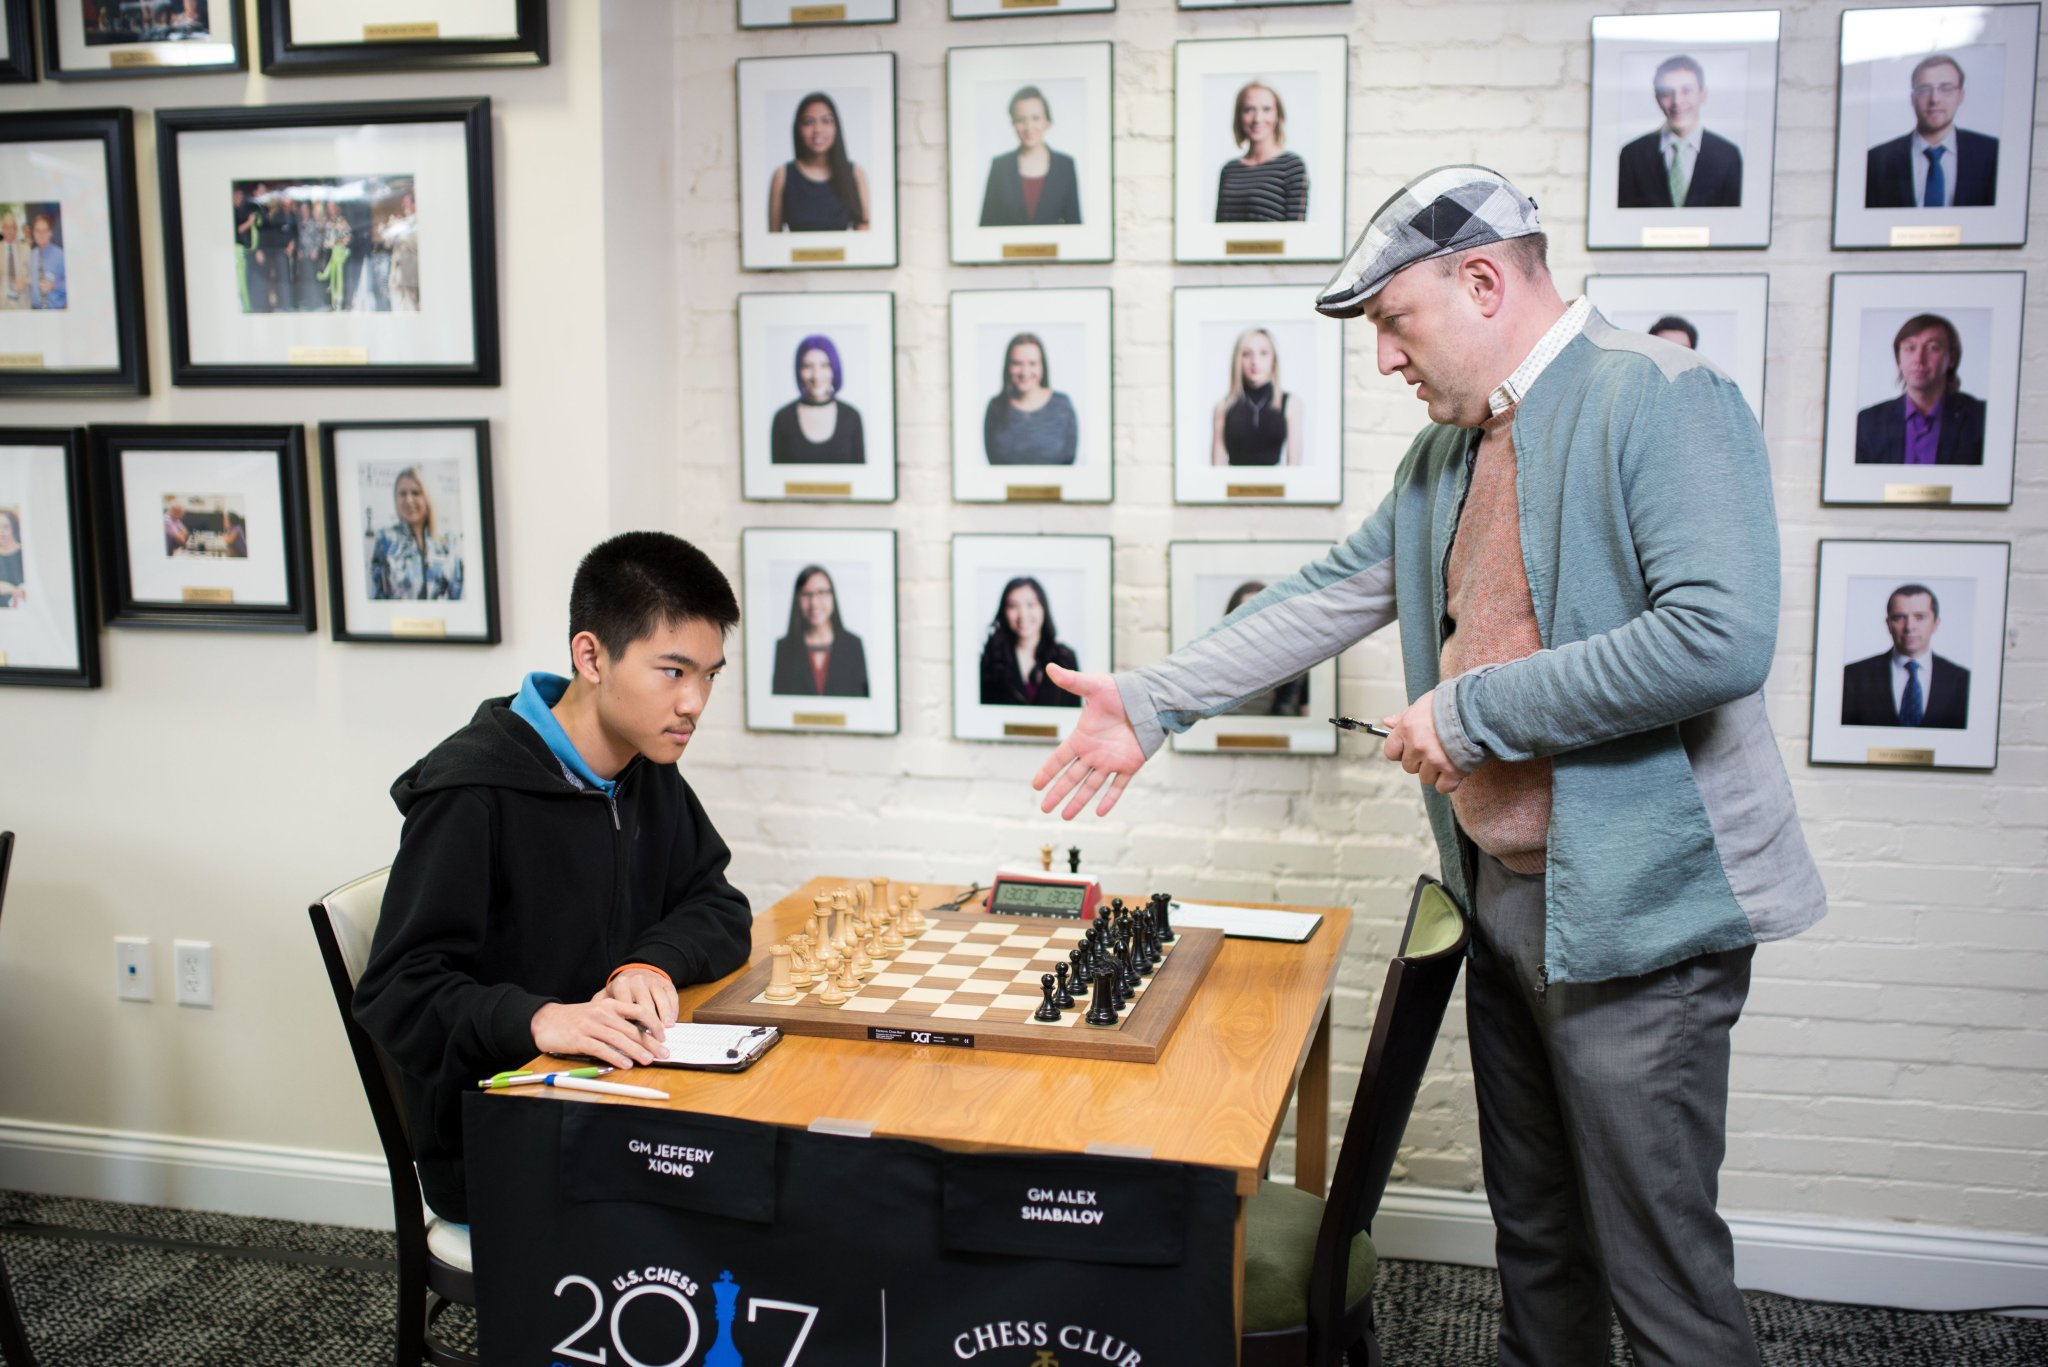 At the 2003 U.S. Championship, Alexander Shabalov made a bold prediction that Hikaru Nakamura was going to be a future champion. Photo by CCSCSL